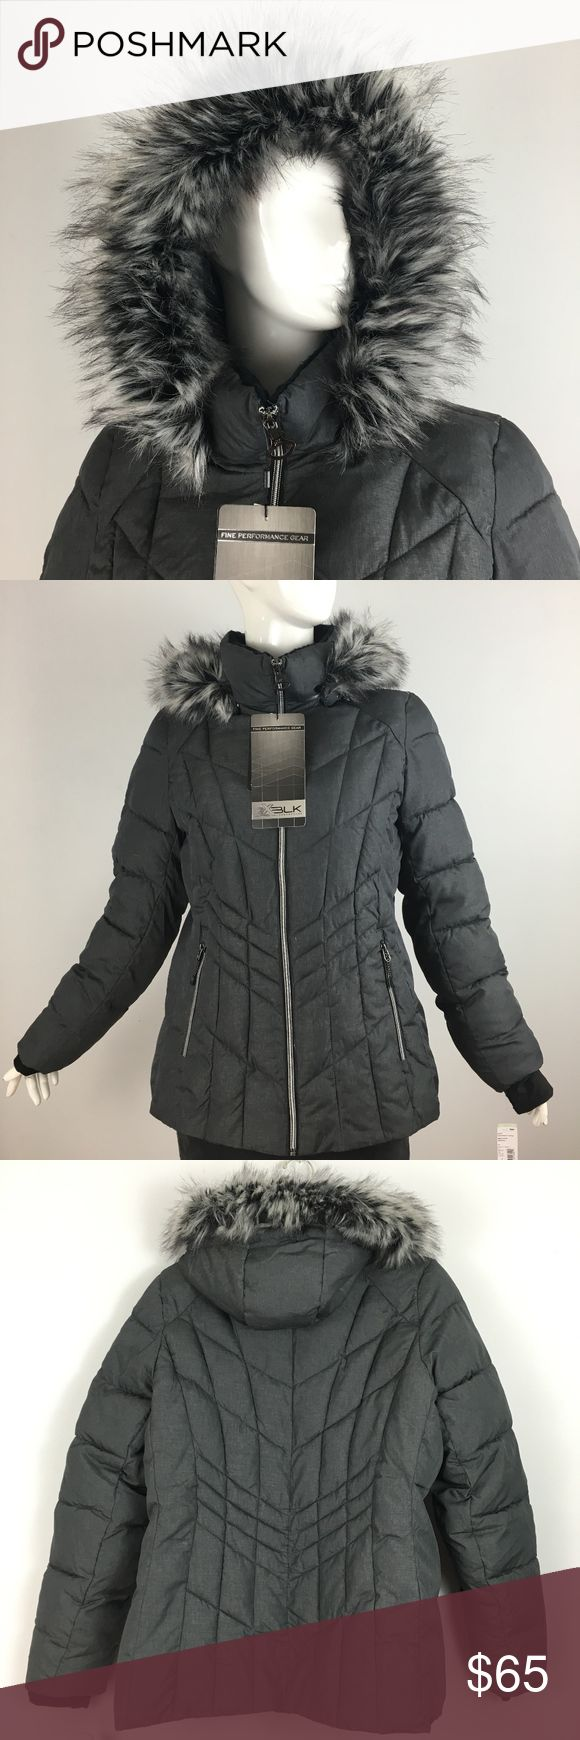 Zeroxposur ZXBLK Thermo Cloud Snorkel Coat NWT, L Zeroxposur Heavy weight puffer coat  with removable hood with plush faux fur trim and zippered pockets. Water Repellent Lightweight, Thermal Efficient, Hypoallergenic, Moisture Resistant, Superior Warmth. Size Large. New with tags. jcpenney Jackets & Coats